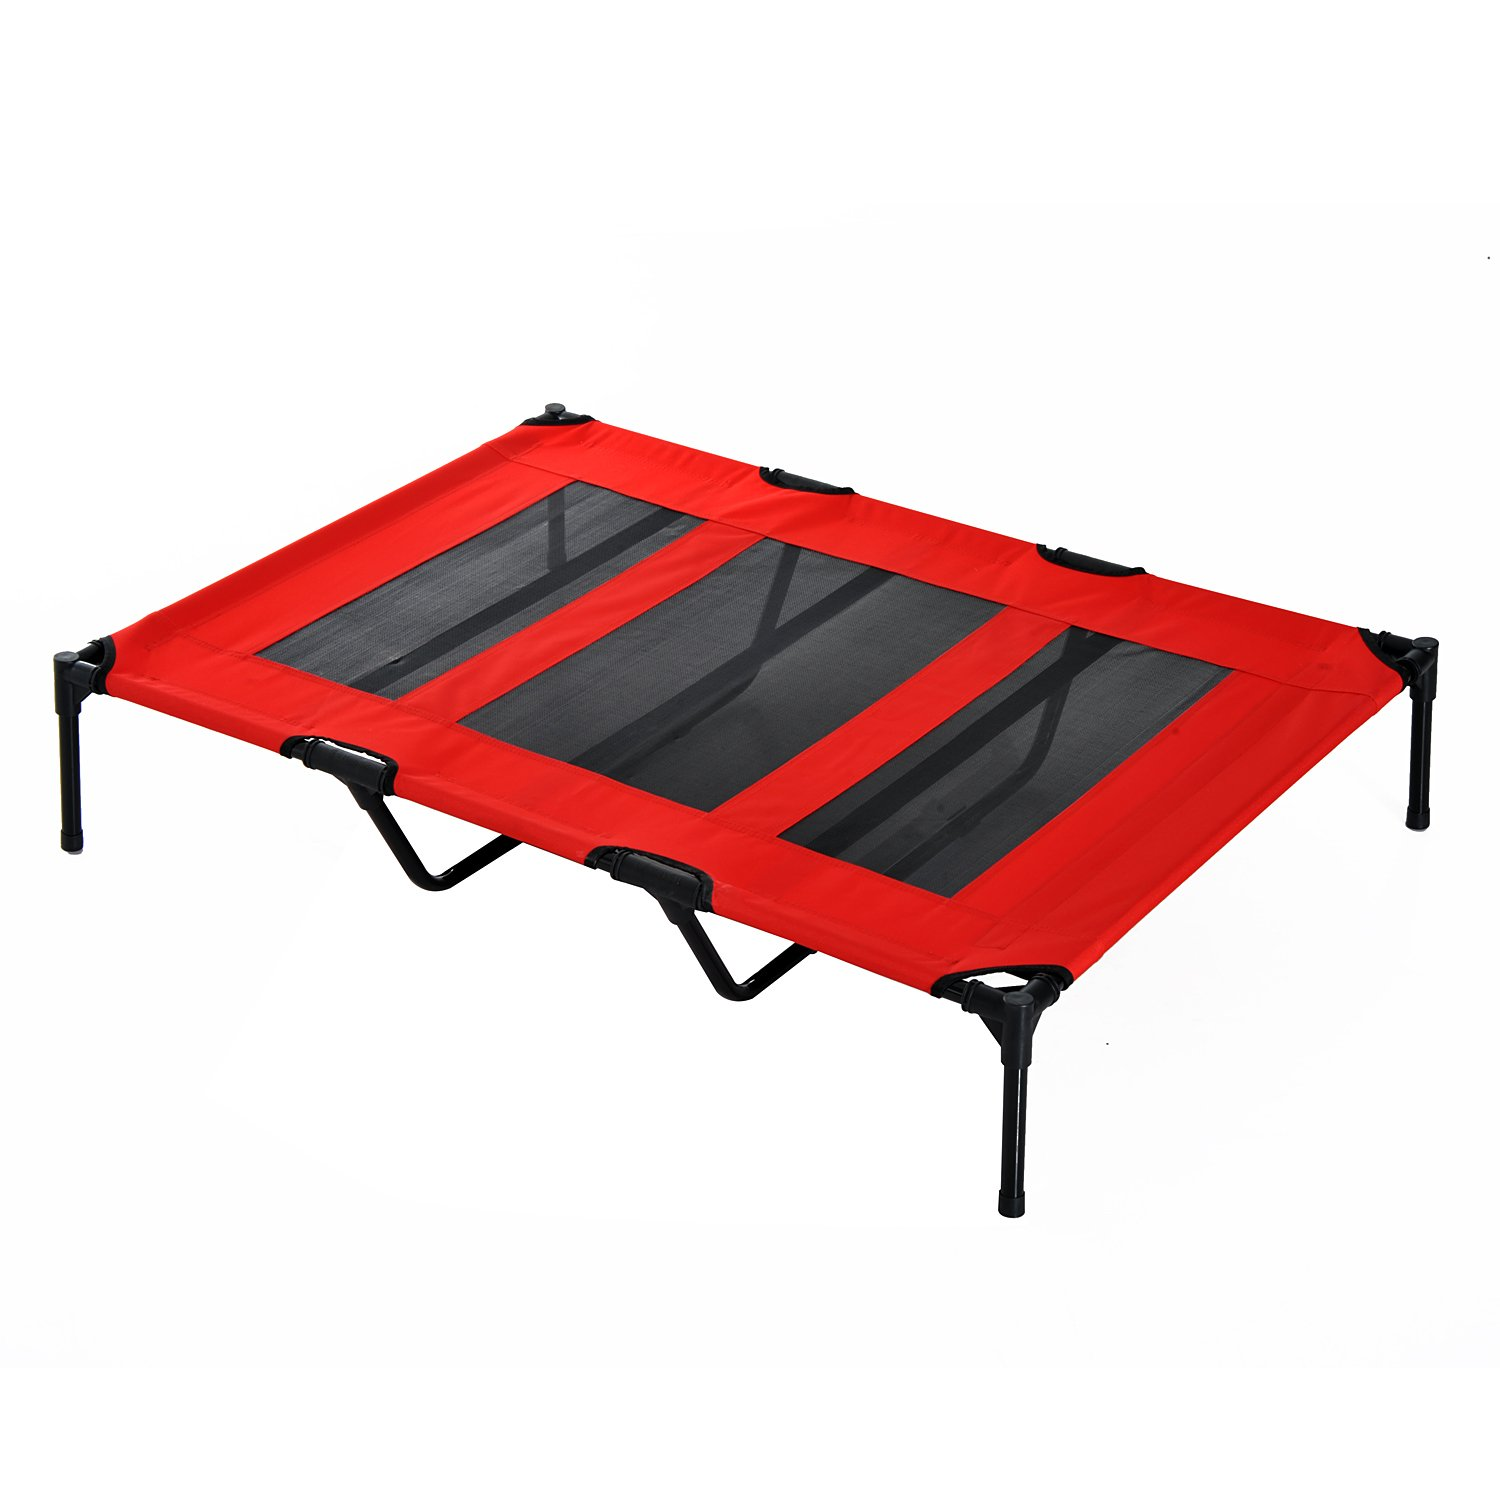 PawHut D04069RD 48  X 36  X 9  Elevated Pet Bed Foldable Raised Dog Cot with Carrying Bag, Red Black